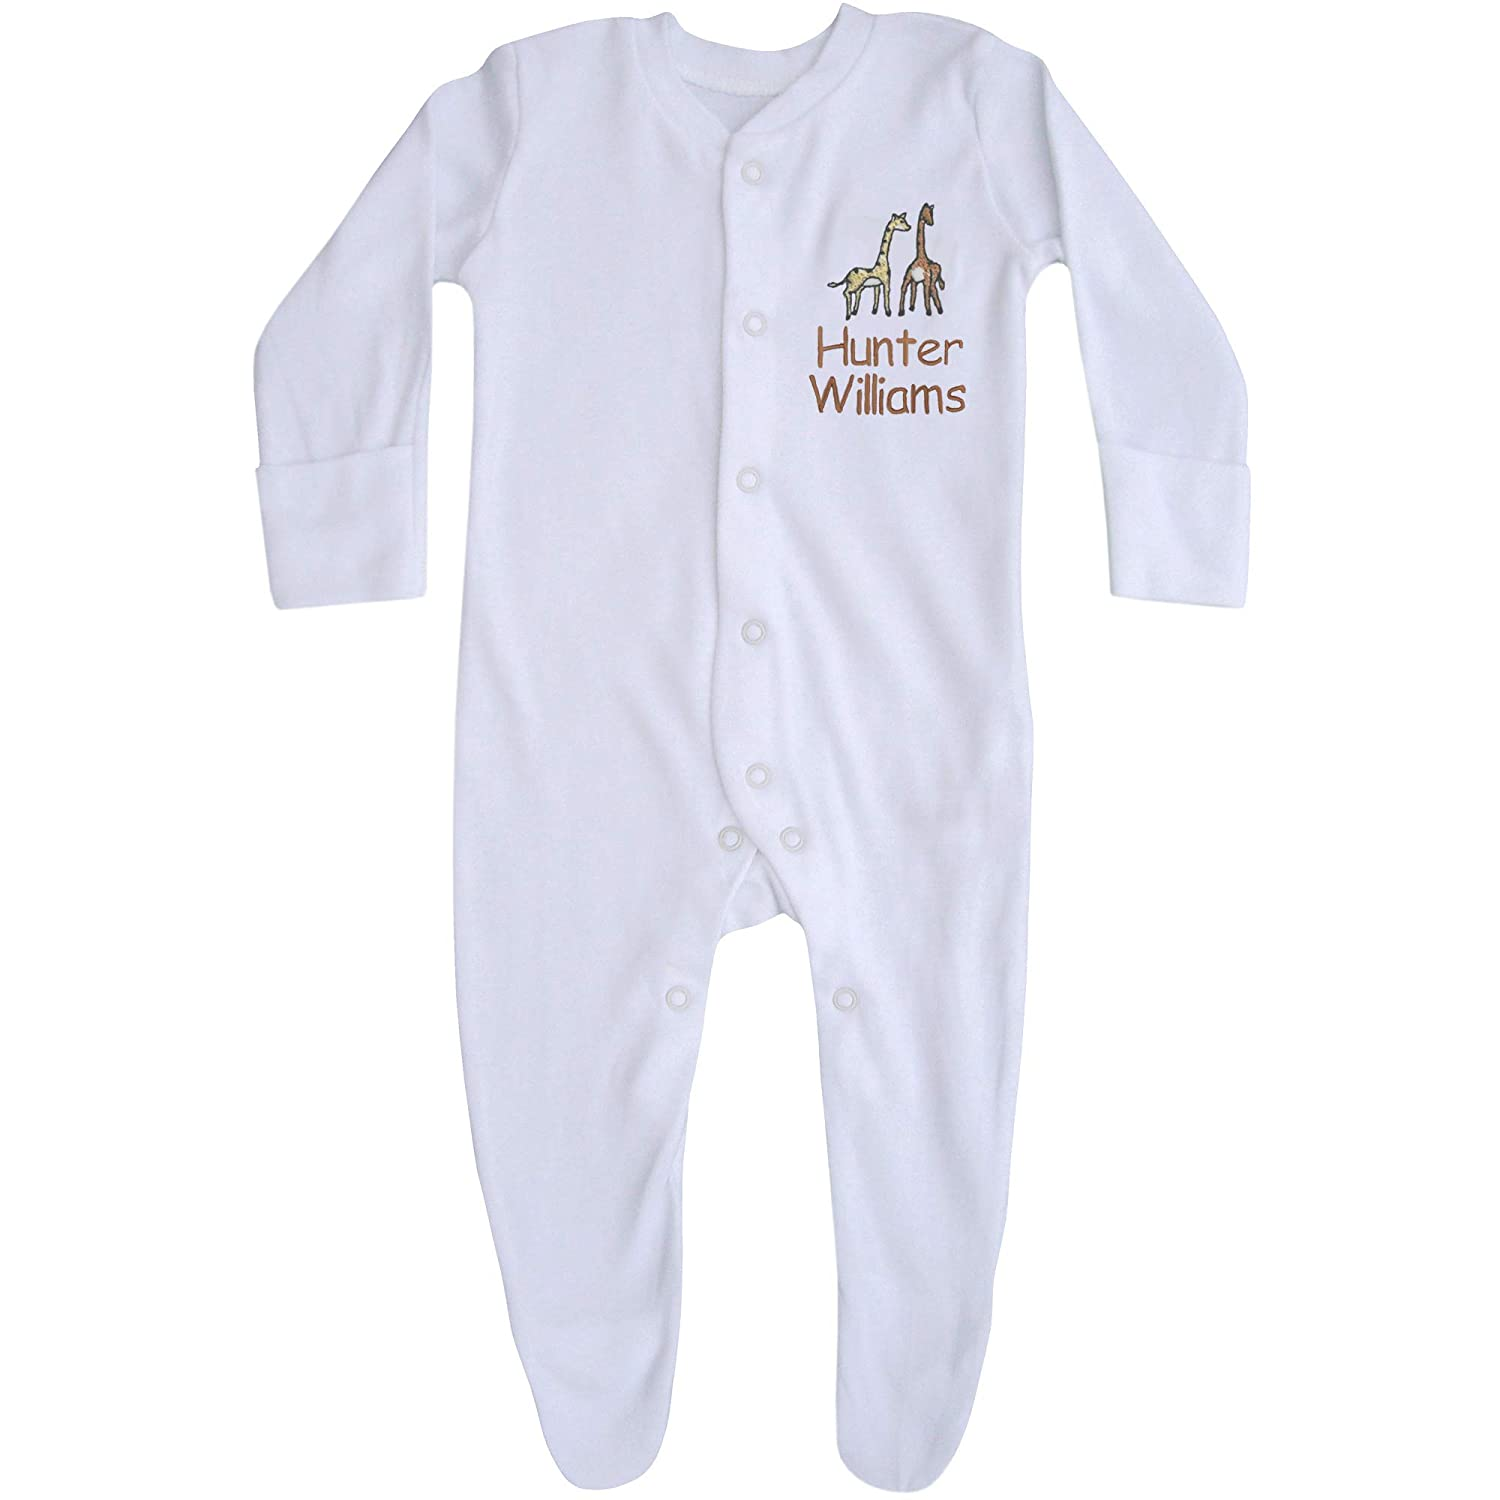 Baby White Personalised Name All in One Giraffe Sleepsuit